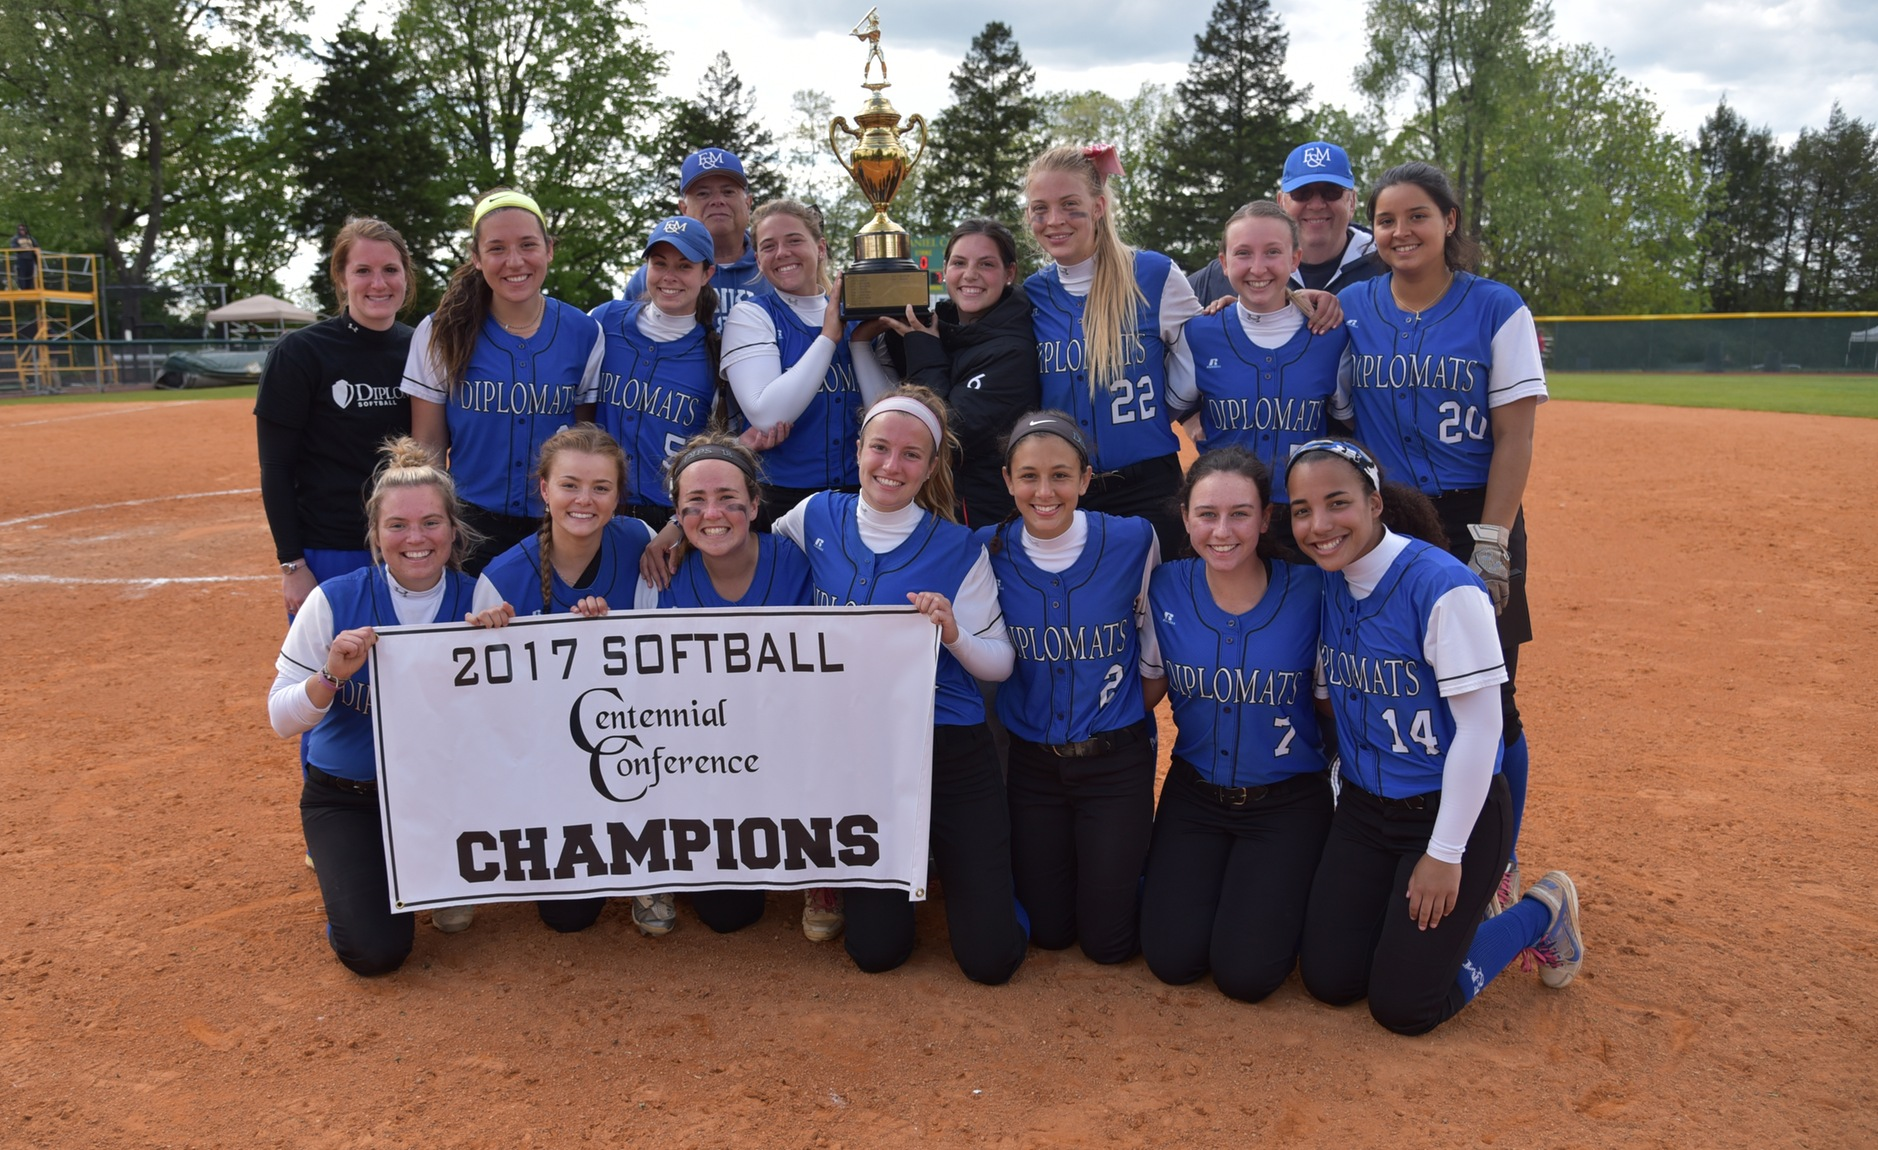 Diplomats Dodge Bullets to Claim First CC Championship